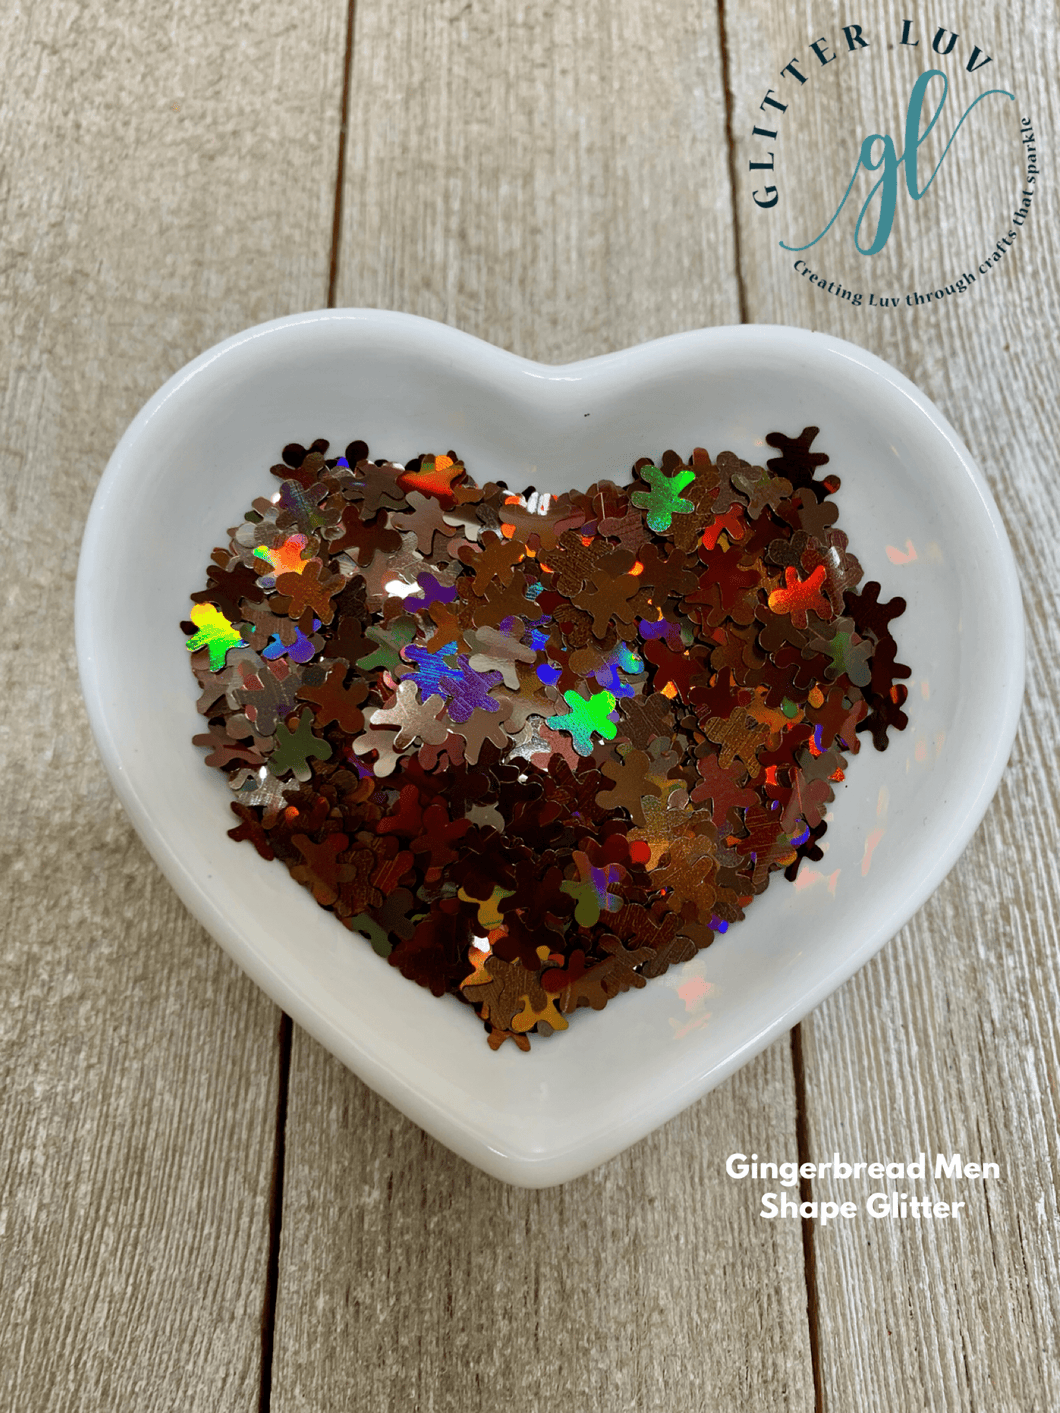 Glitter Luv Shapes 0.5oz Shaker Gingerbread Man Shapes